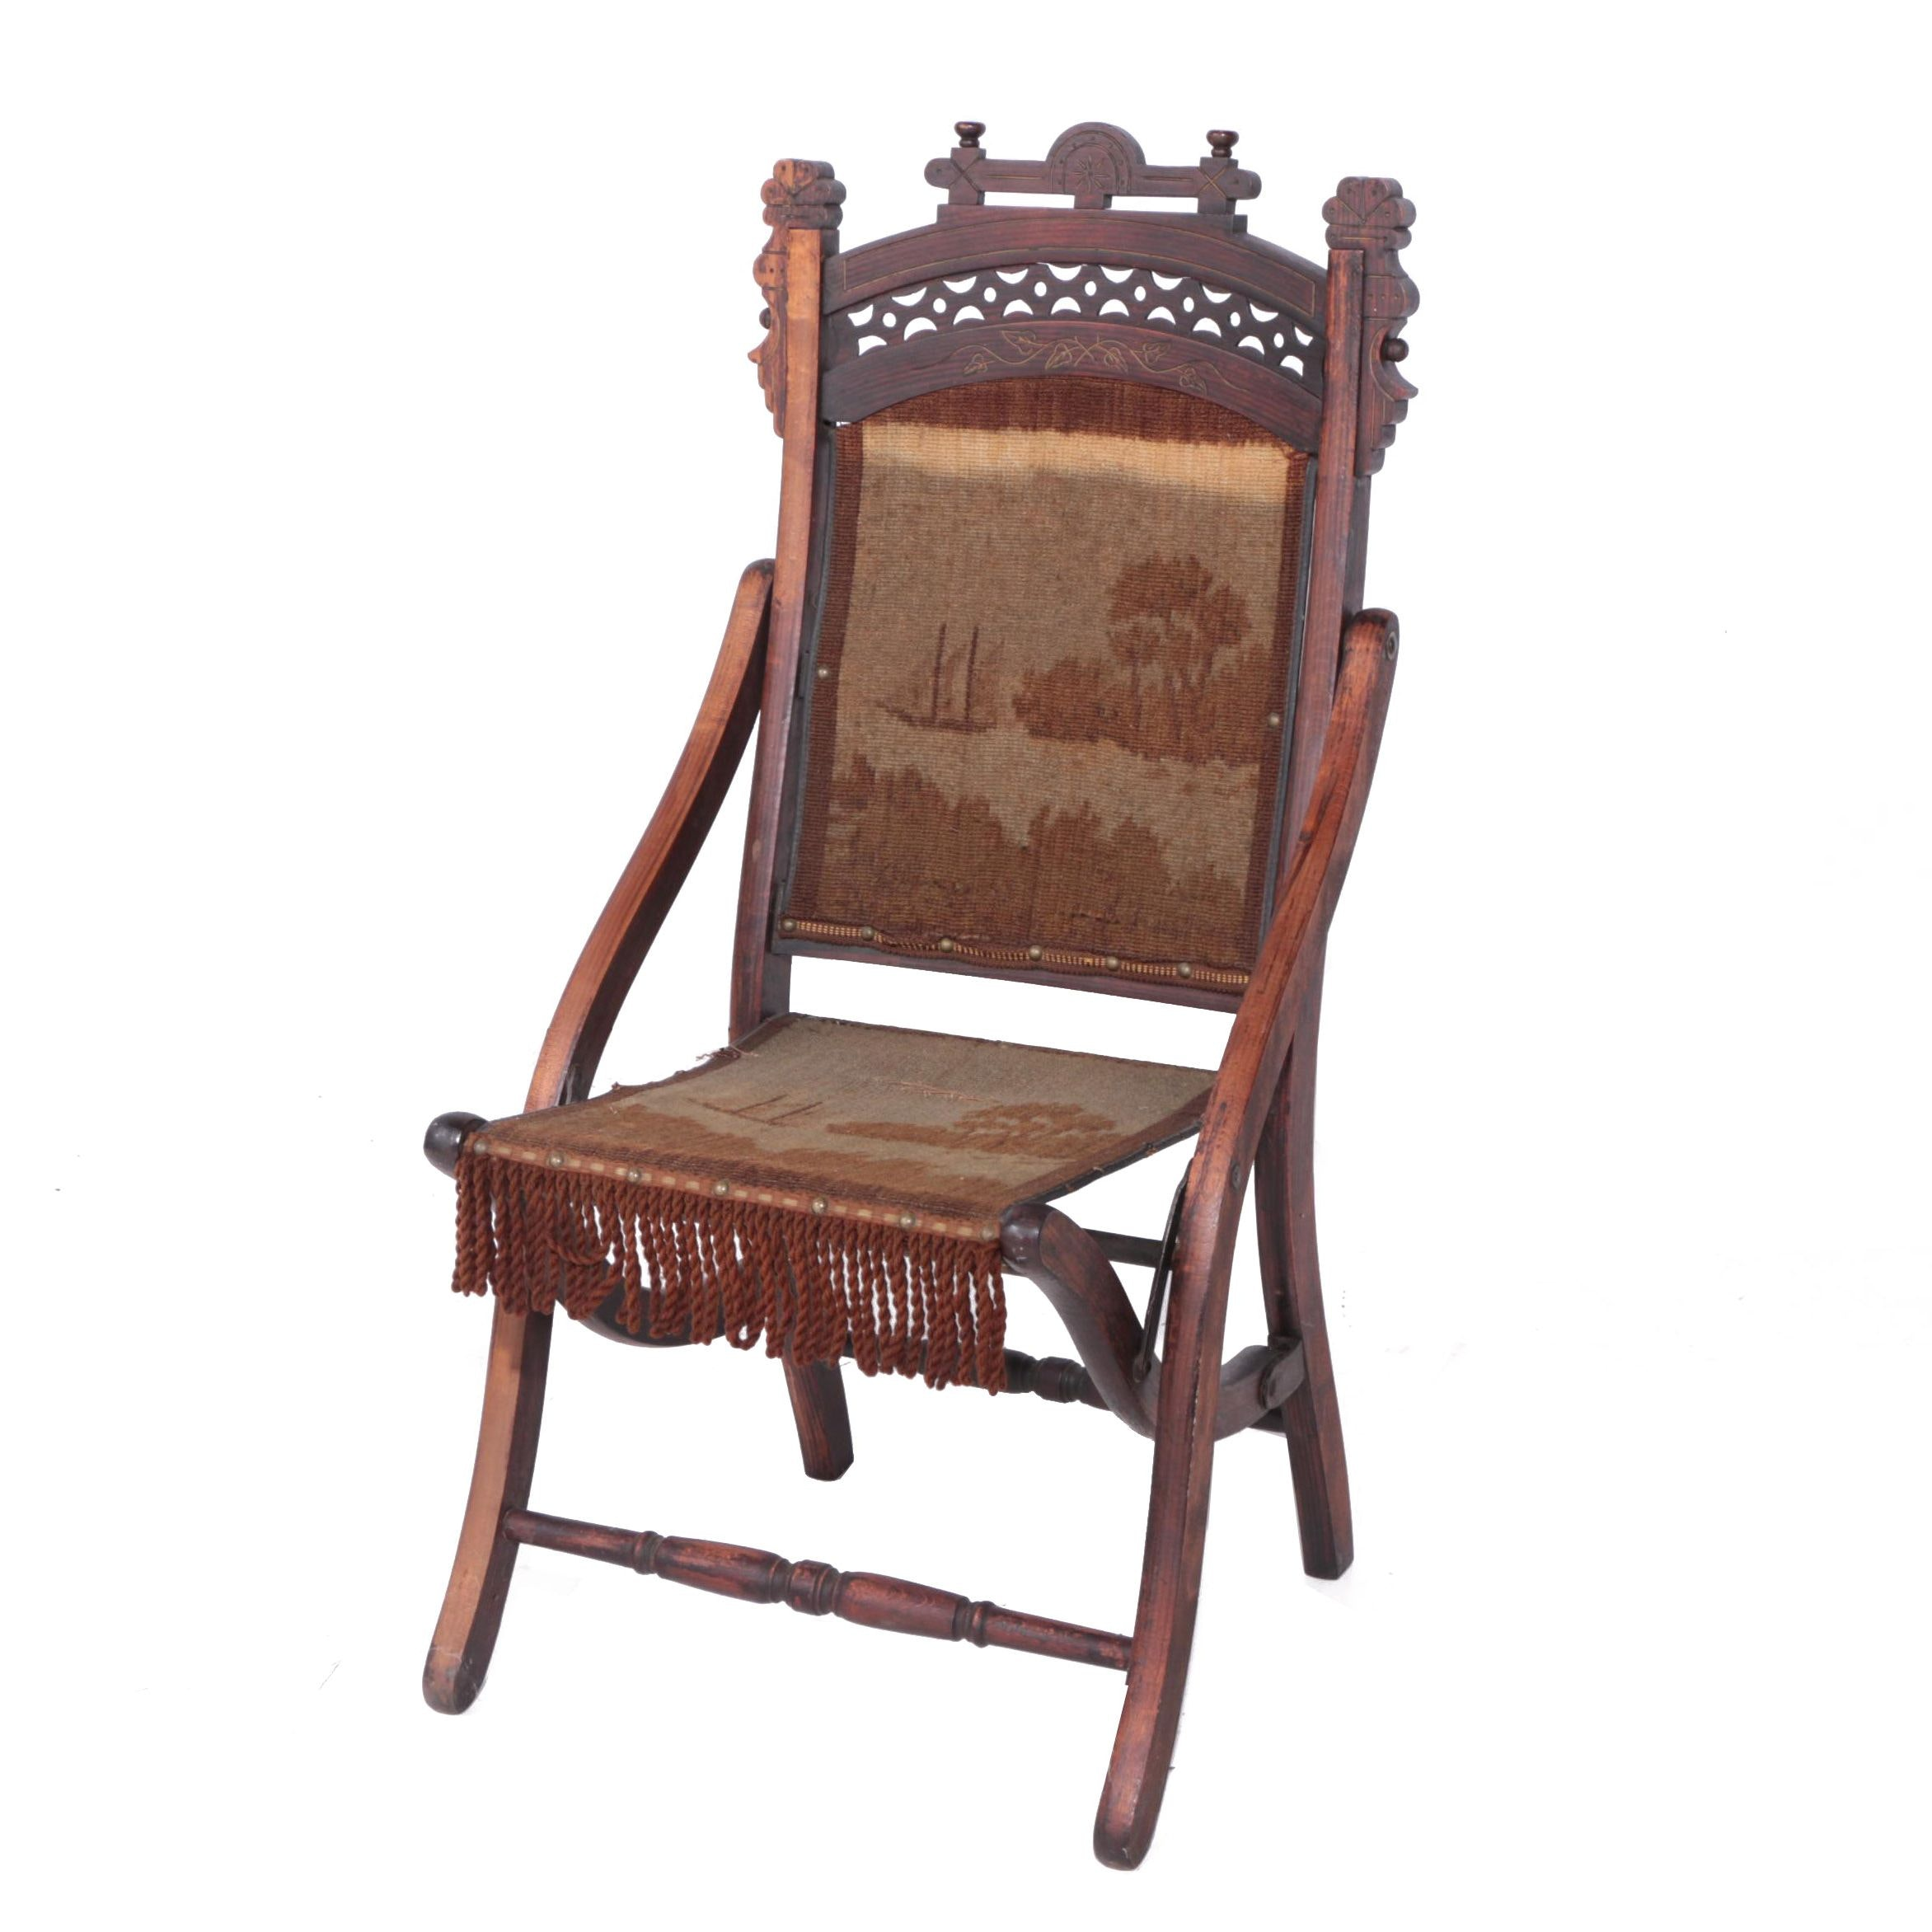 Eastlake Folding Chair with Tapestry Upholstery, Late 19th Century